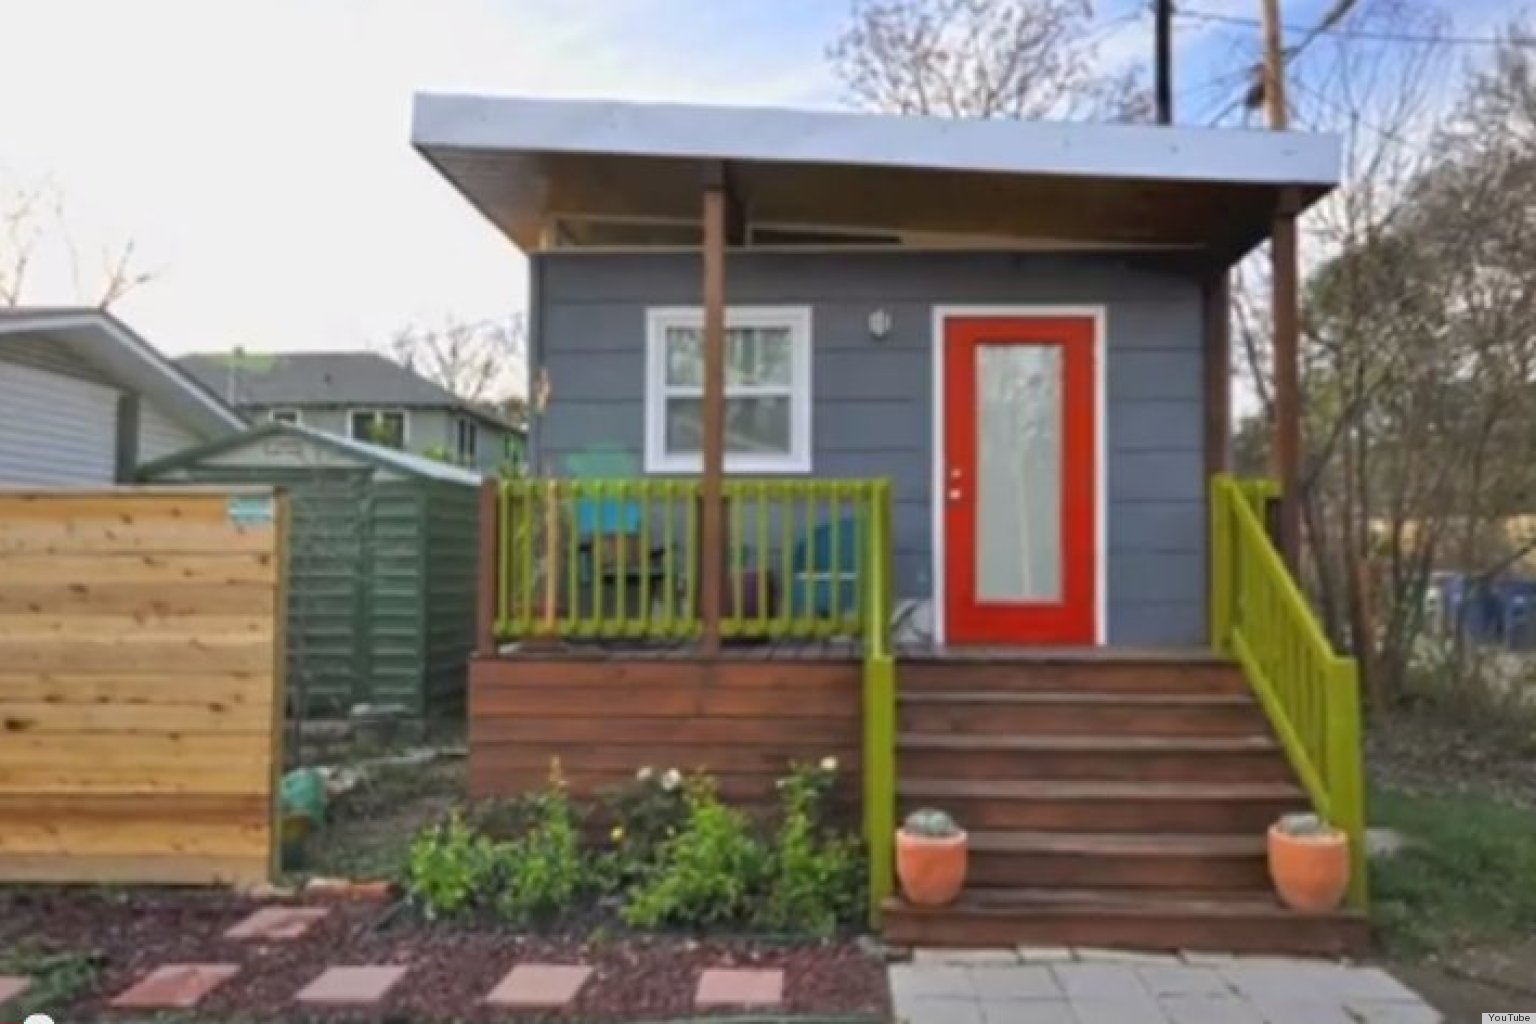 kanga prefab is a tiny home thatll change minds about small space living video huffpost - Prefab Tiny House